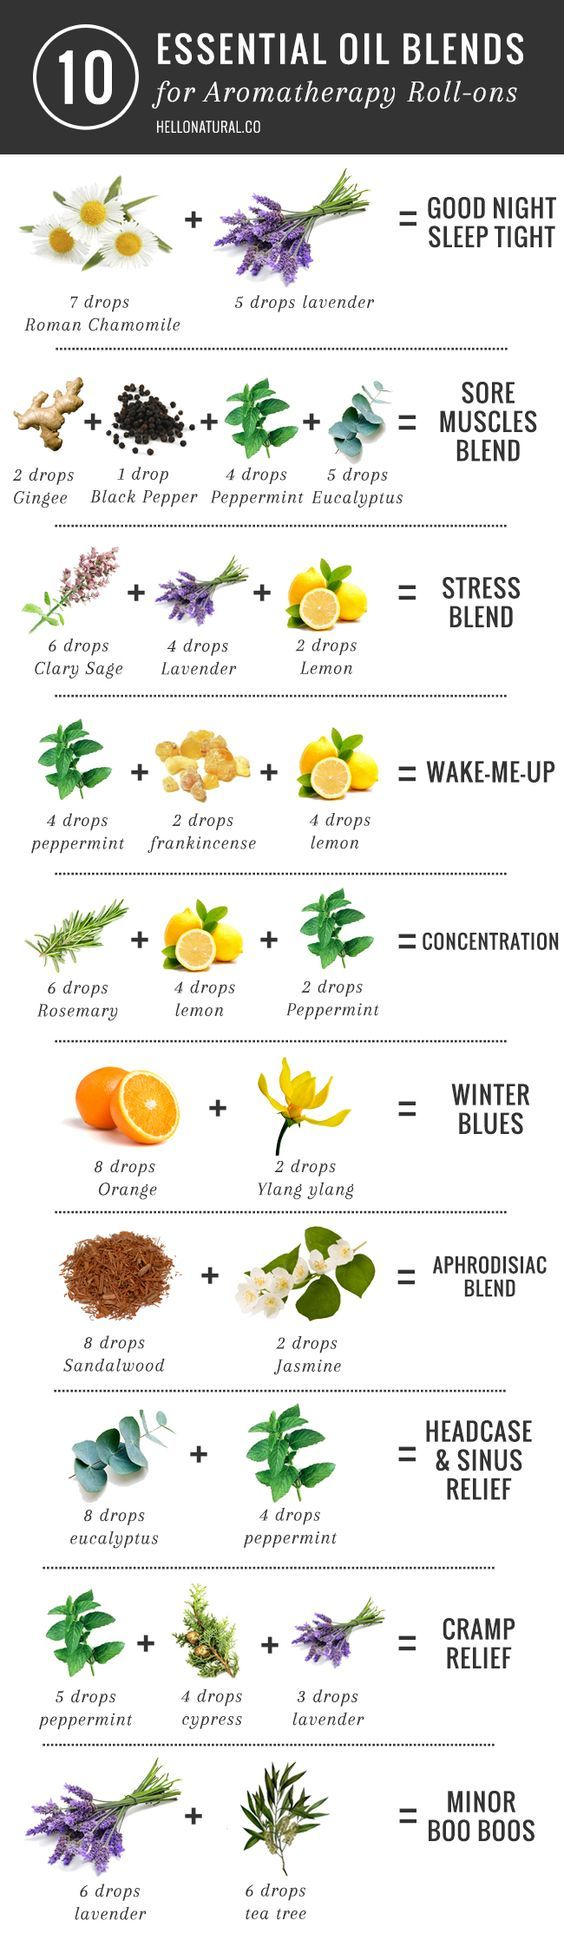 How to: Make Aromatherapy Relief Roll-ons for Headaches, Cramps Insomnia | http://hellonatural.co/how-to-make-aromatherapy-roll-ons/: